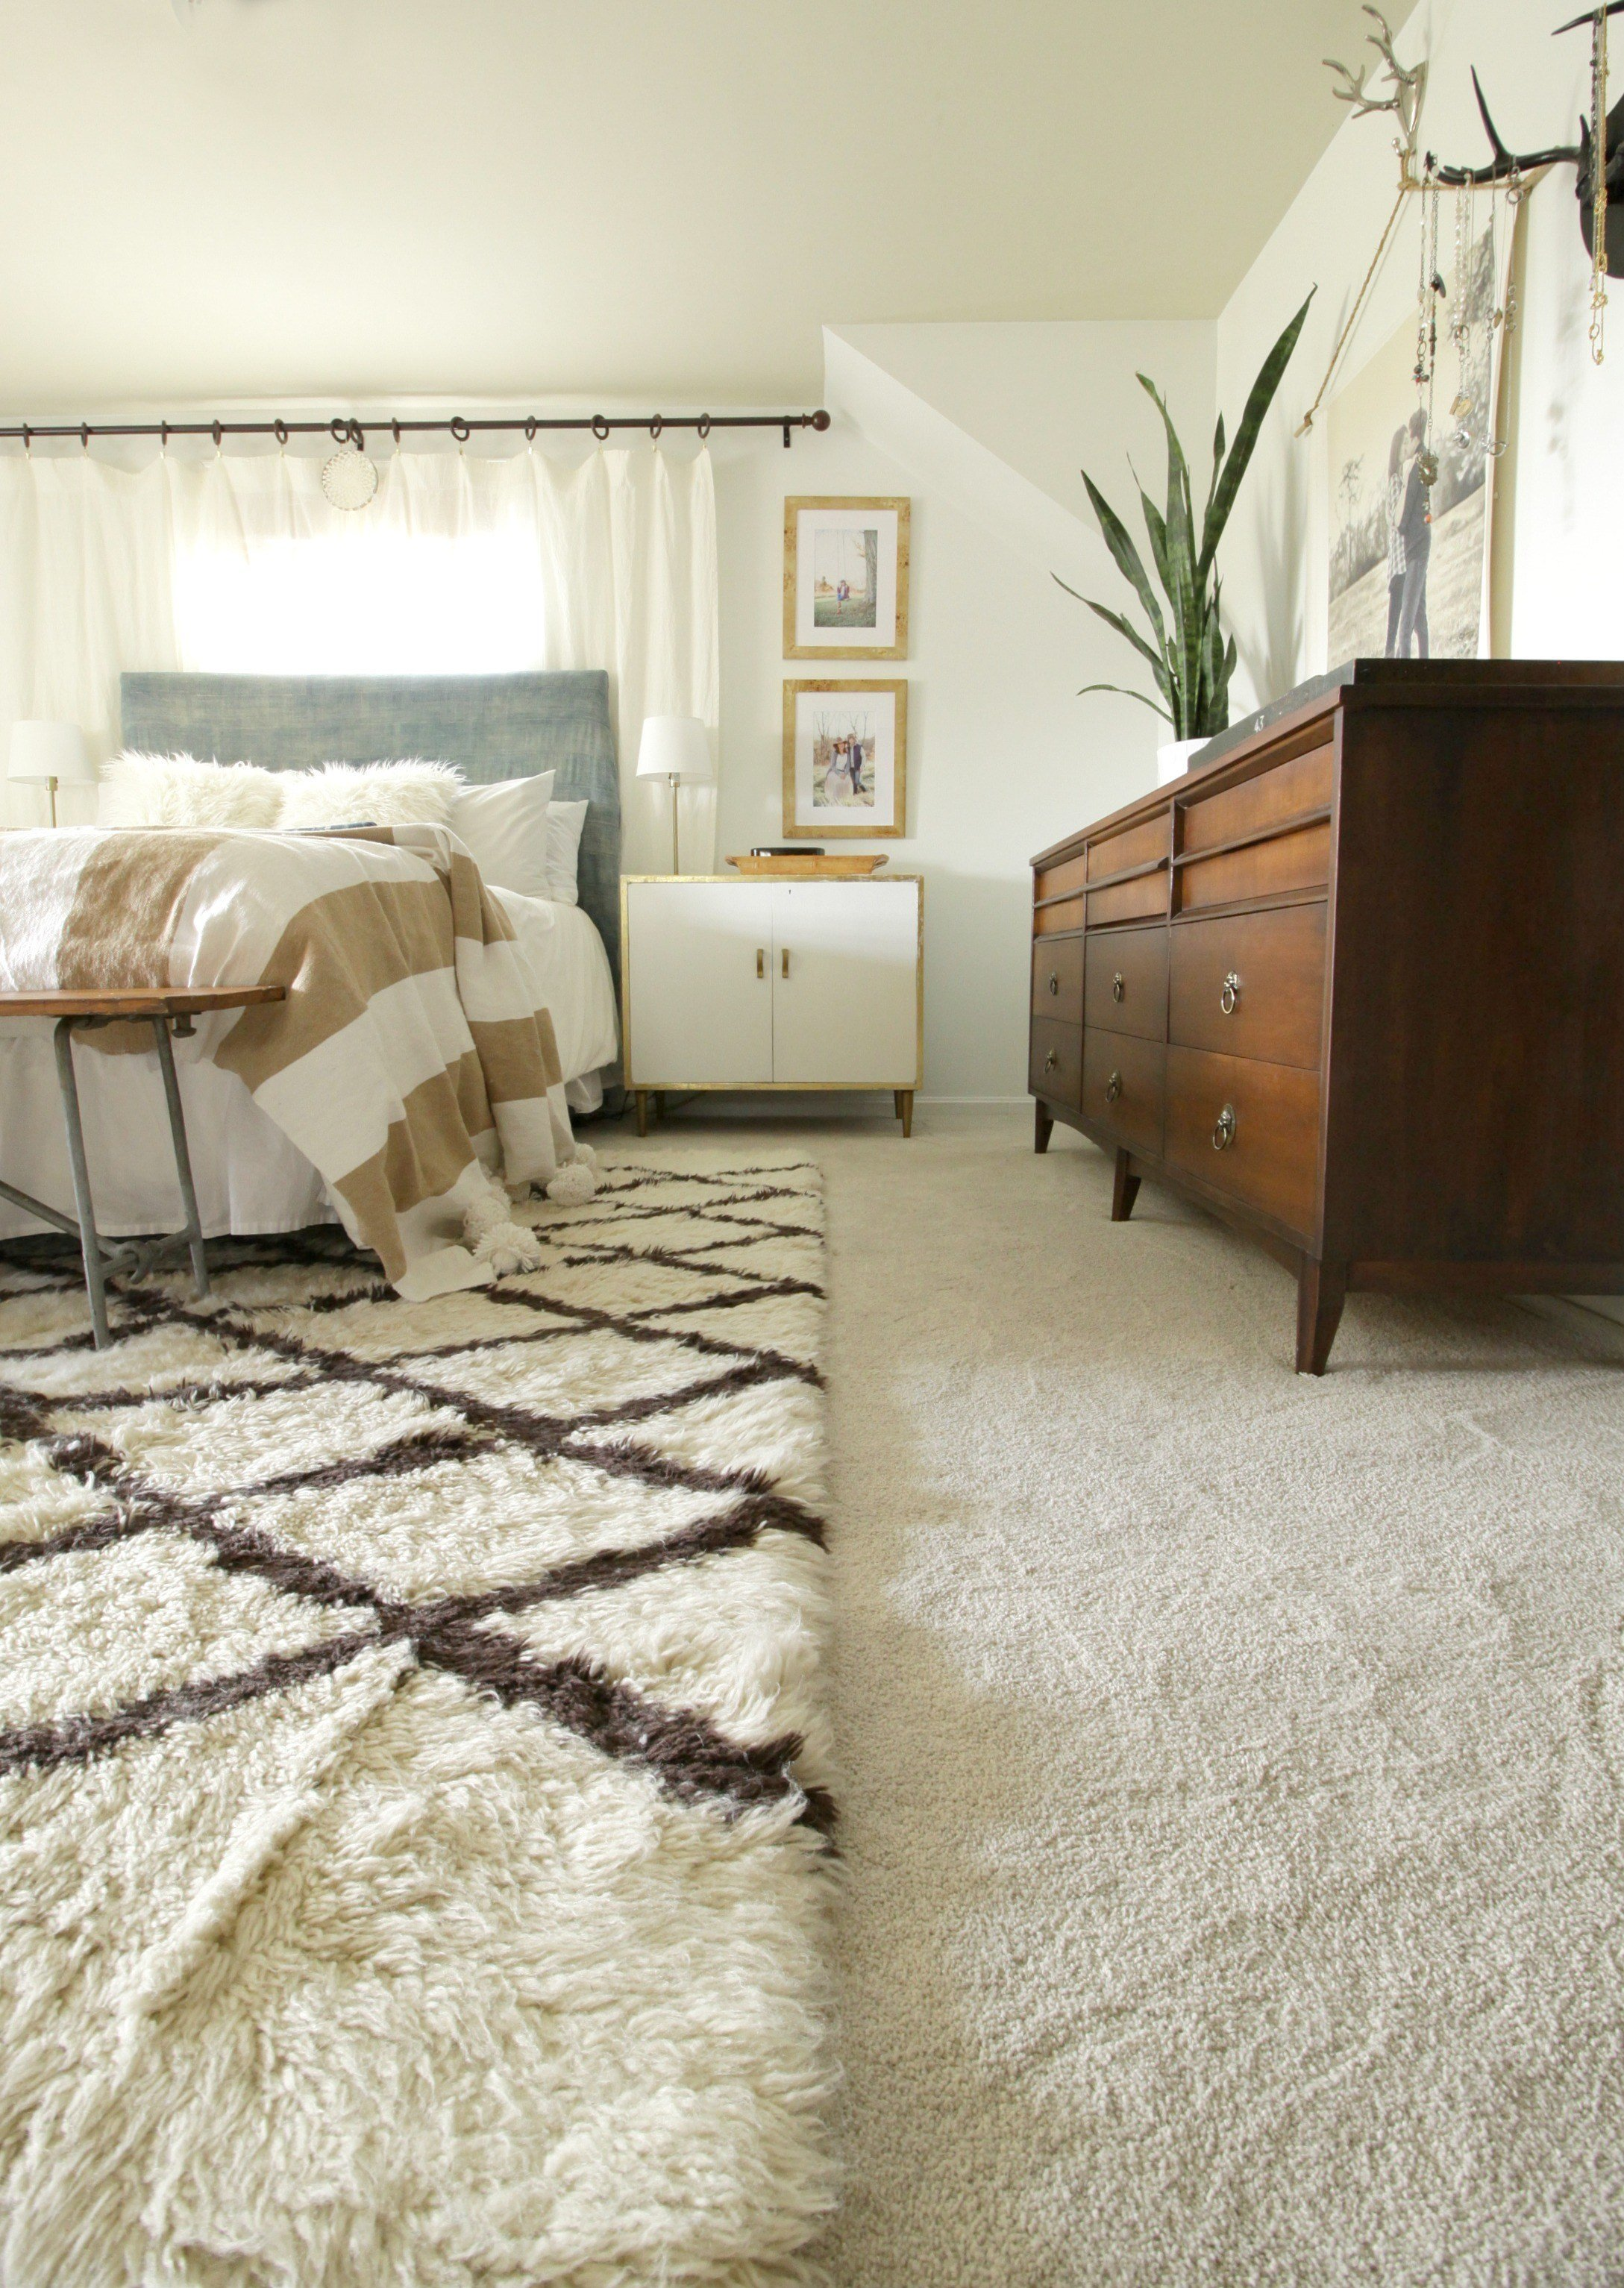 Best Petproof Bedroom Carpeting From The Home Depot Cassie With Pictures